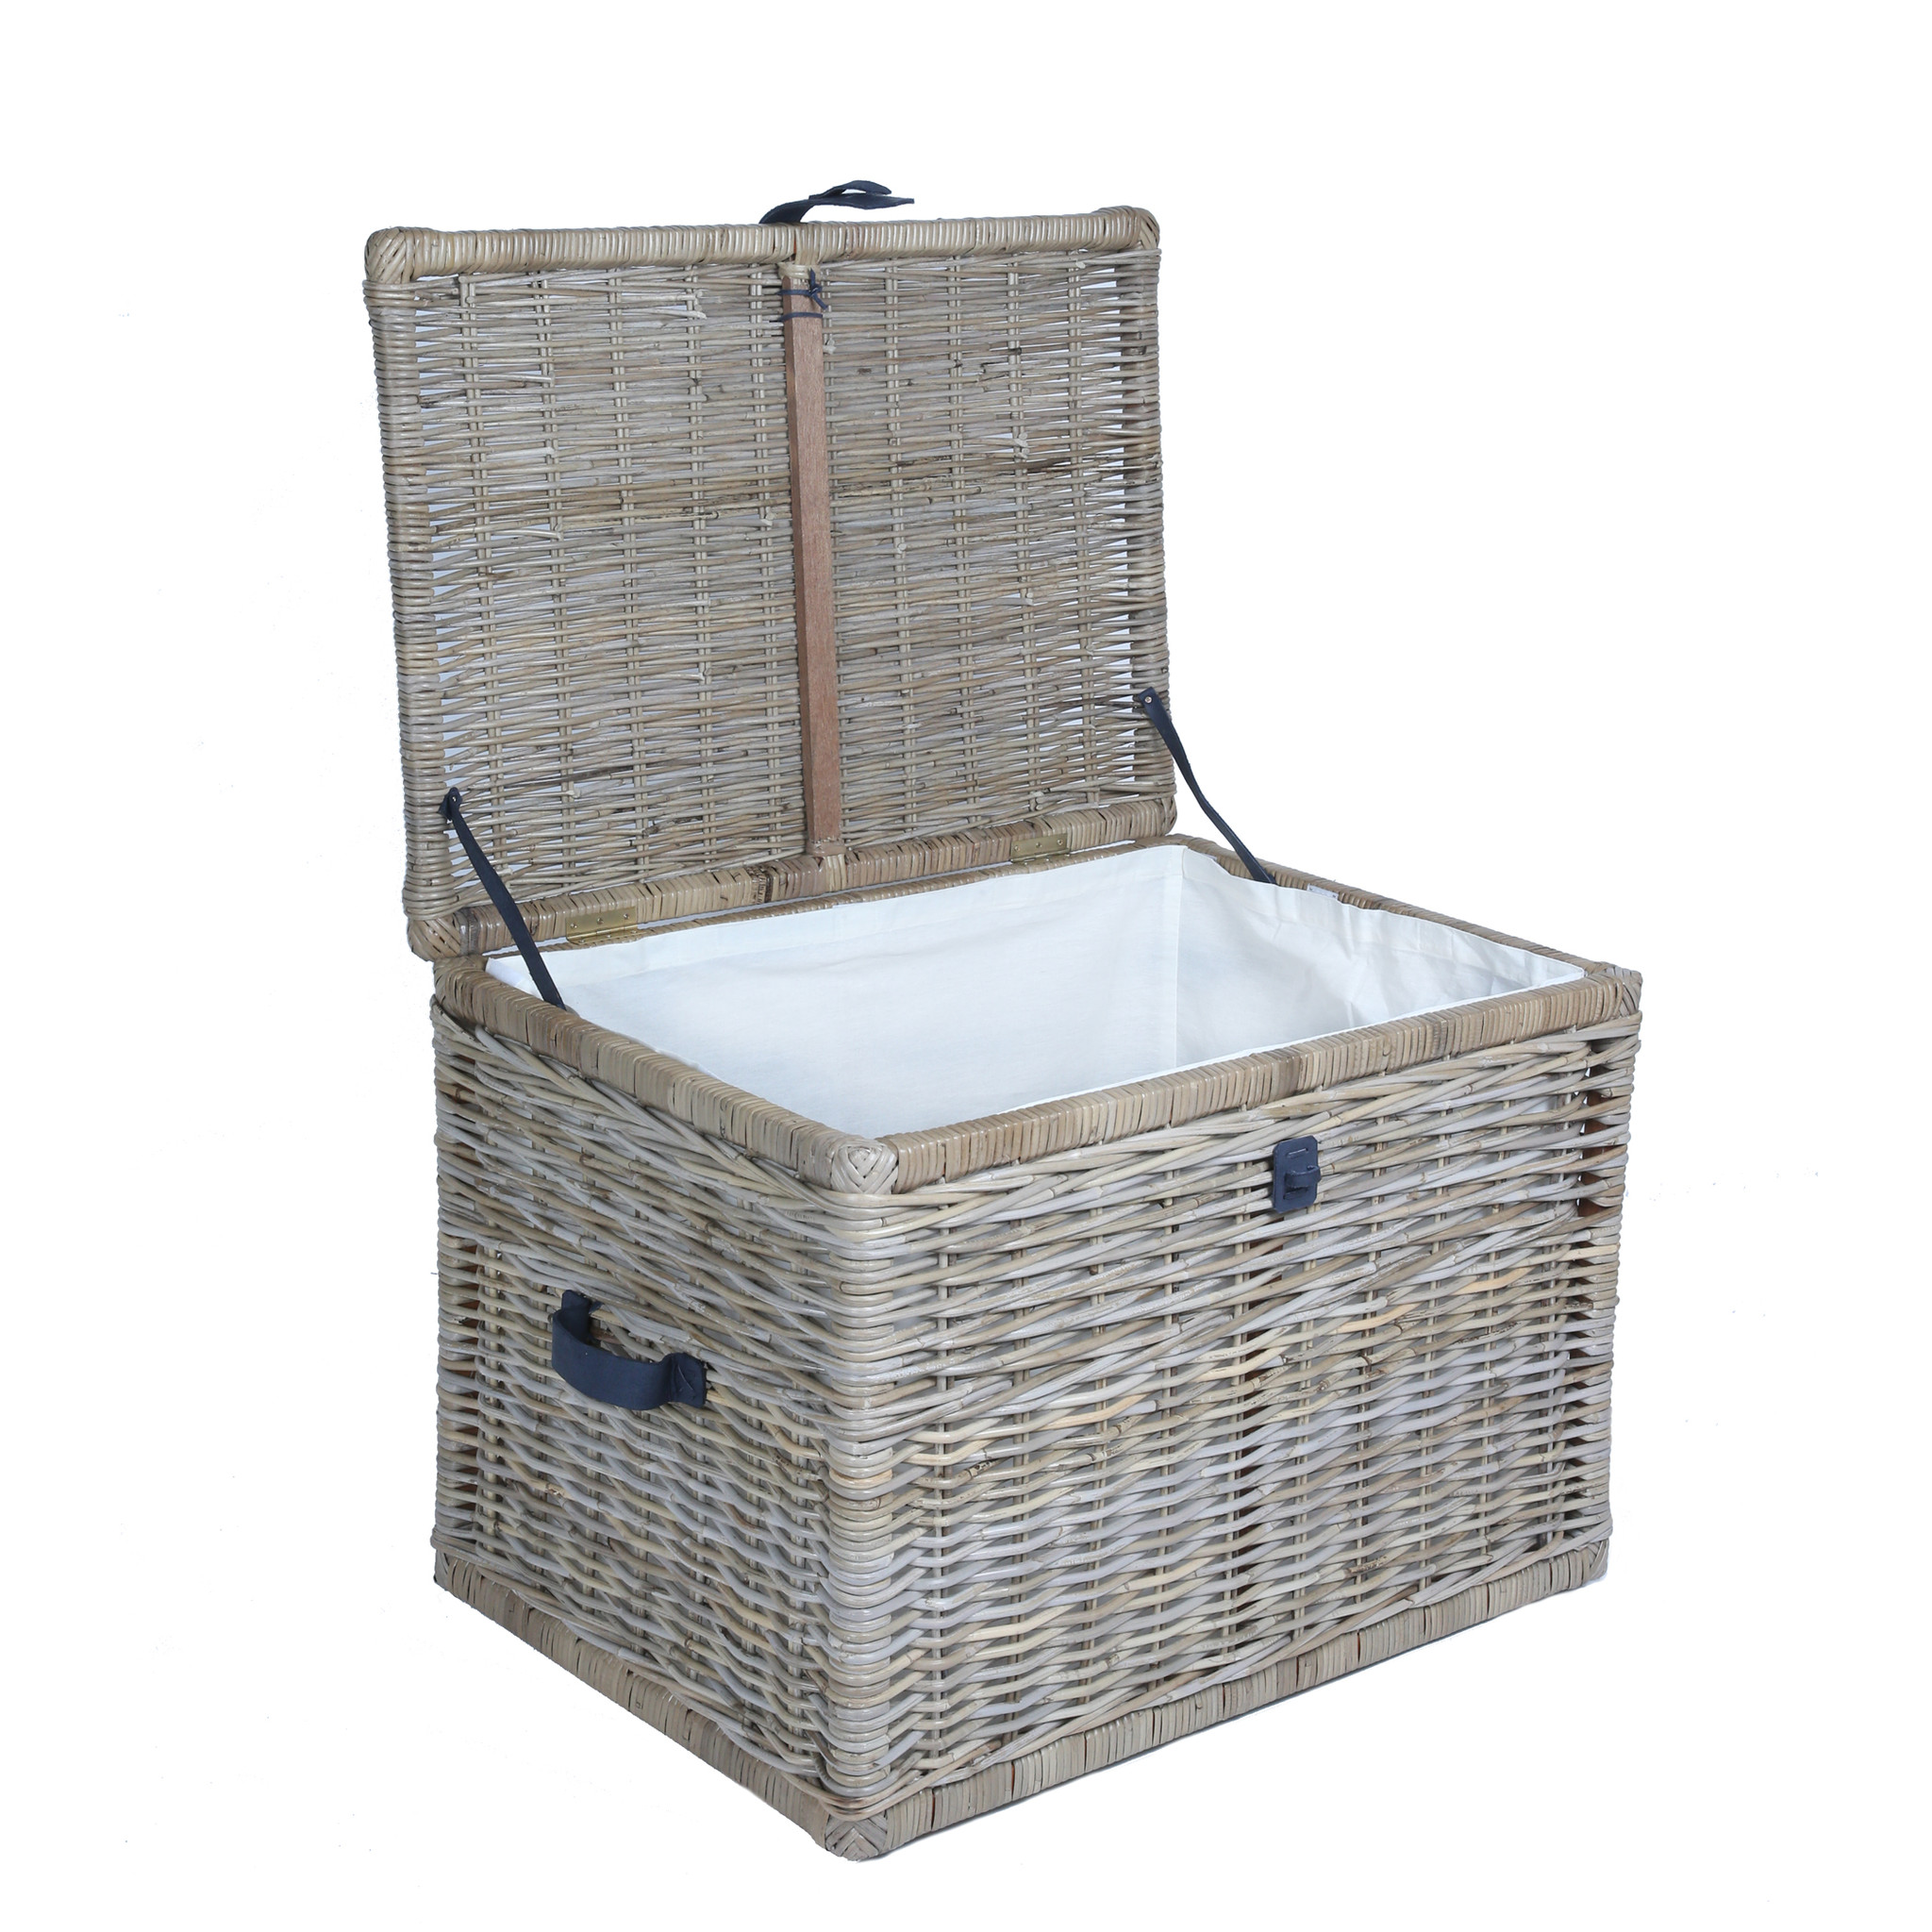 Stylish ... Deep Kubu Wicker Storage Trunk with lid open, large in Serene large wicker storage baskets